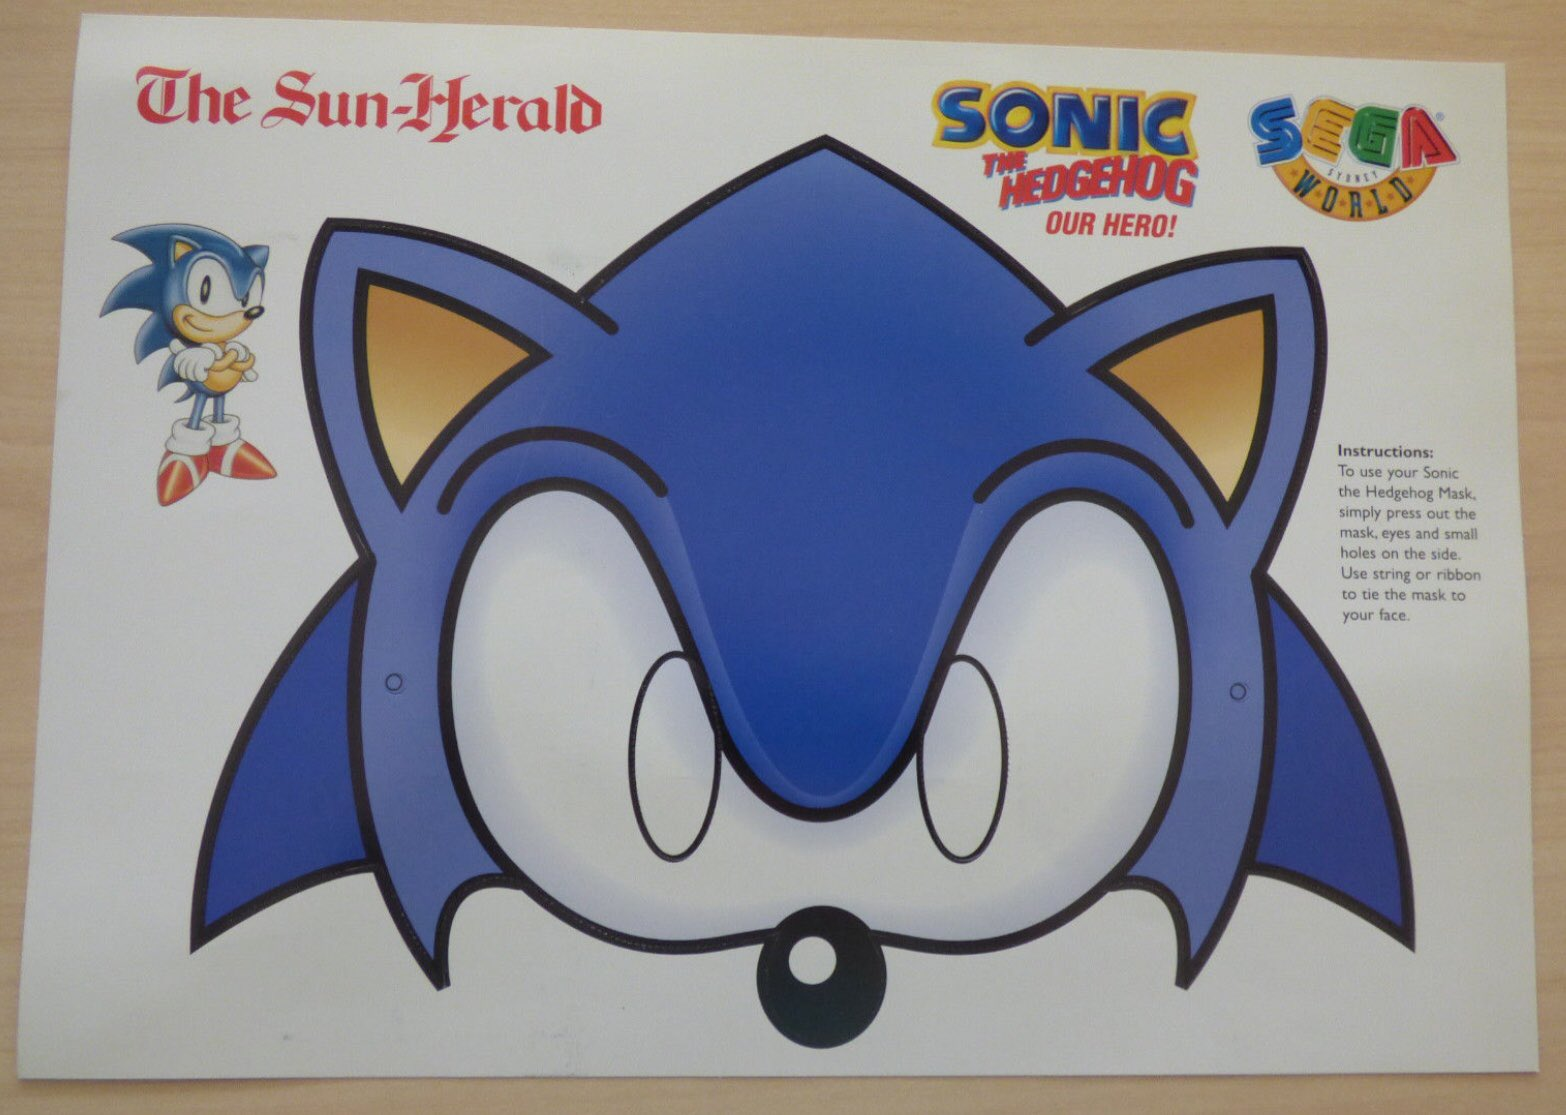 Sega World Sydney Memoriam On Twitter Here S A Paper Sonic Mask That Was Included With The Sun Herald As An Advertisement For Sega World Sydney